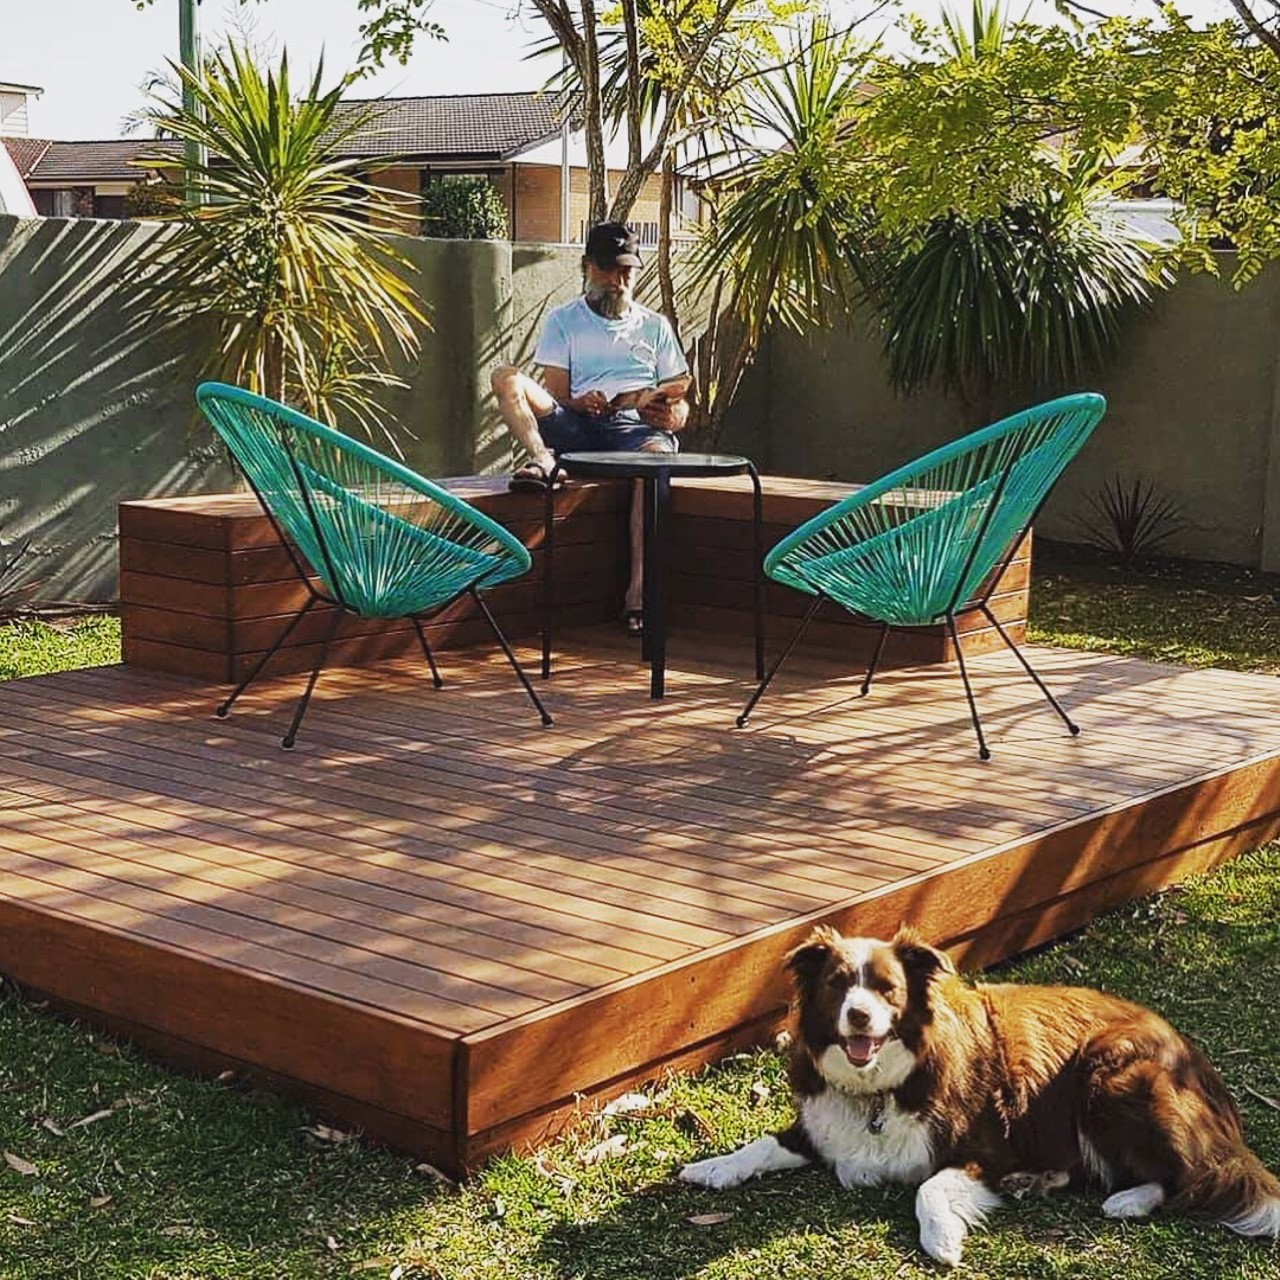 5 Ways to Incorporate Timber Garden Features in Your Outdoor Spaces